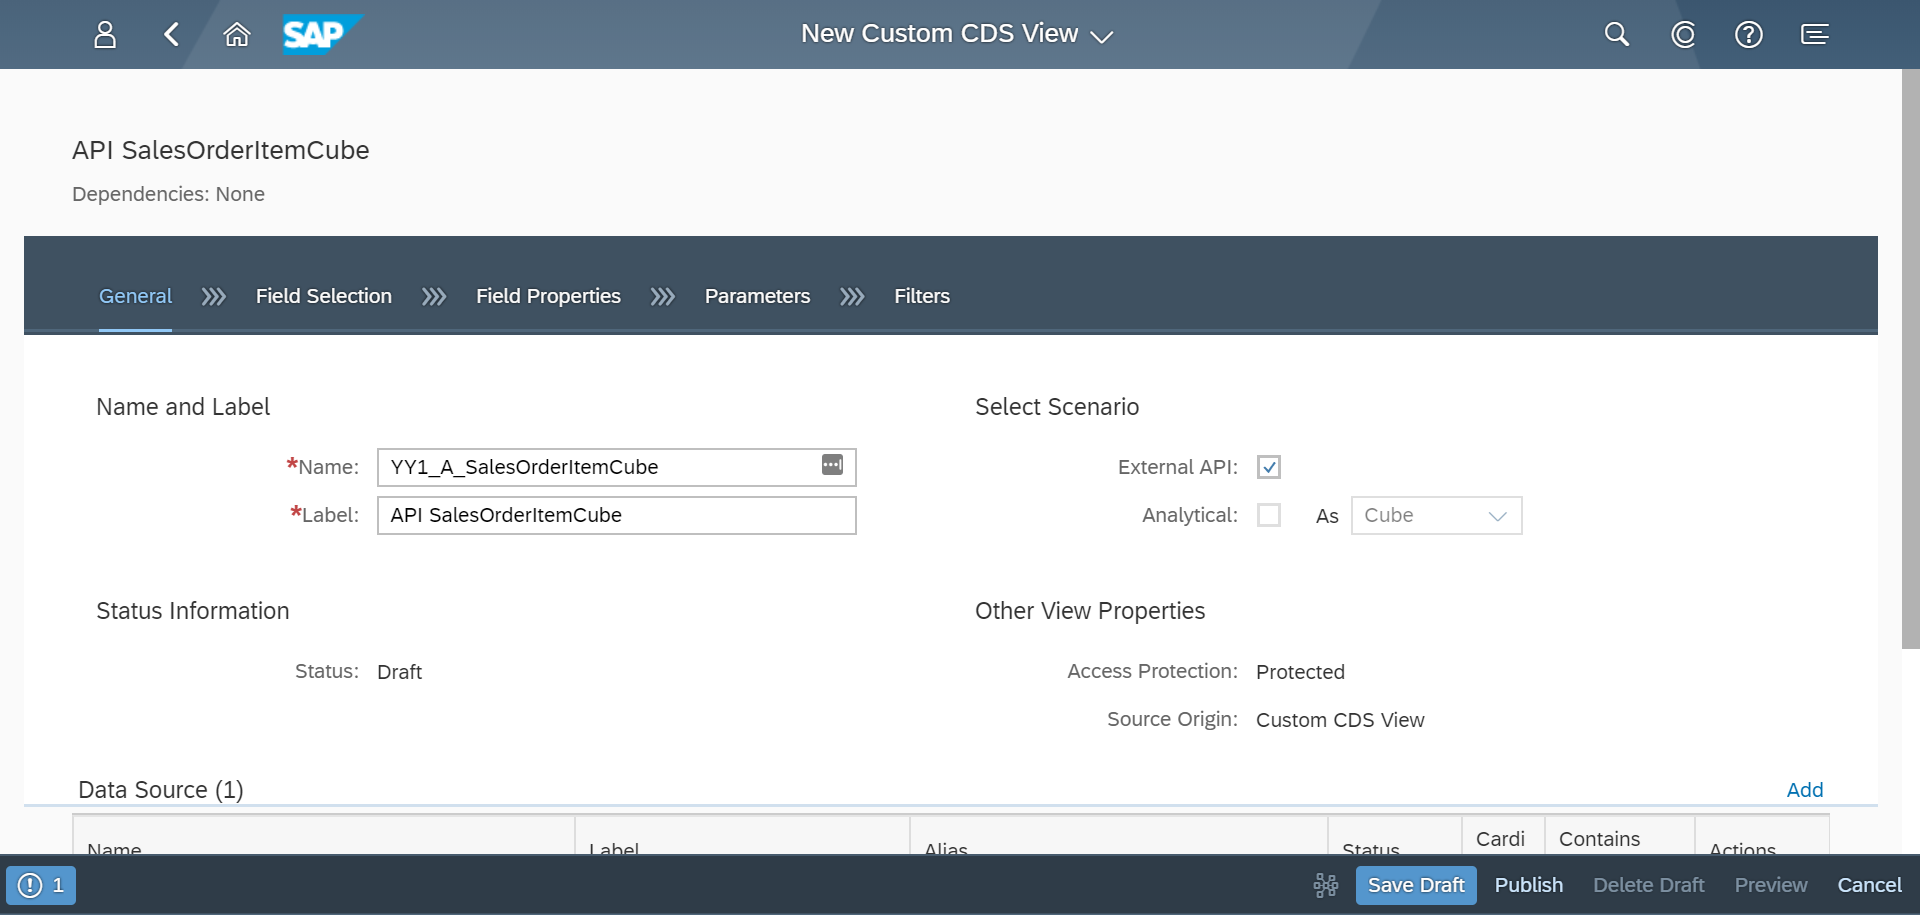 Image: S/4HANA Cloud Custom CDS Views 1